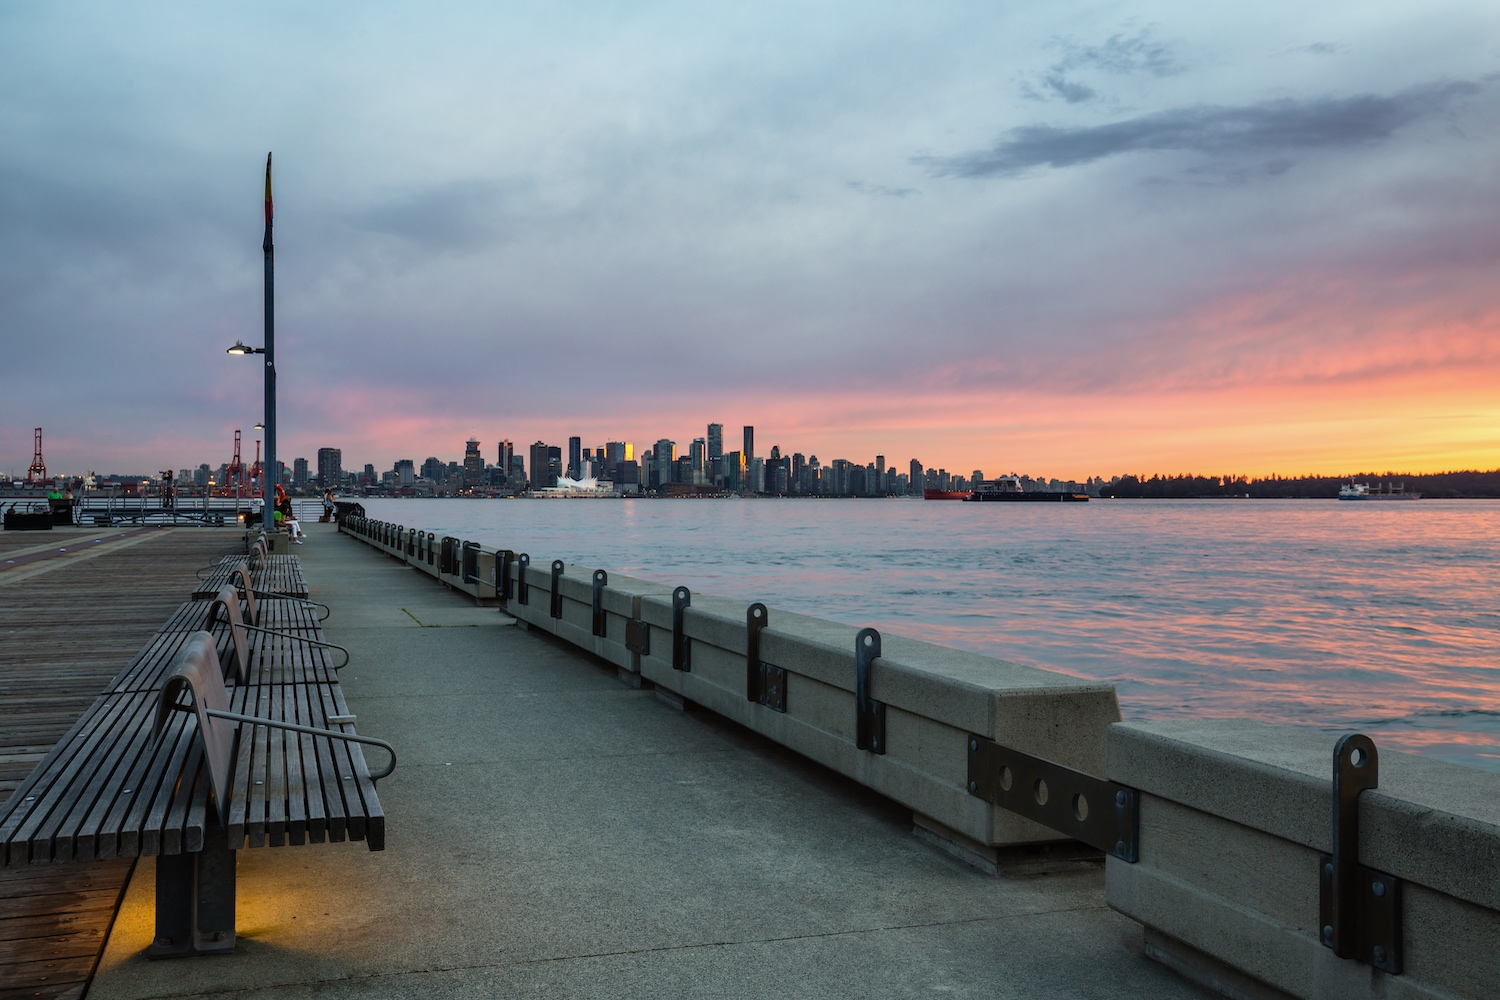 lonsdale viewpoints in vancouver